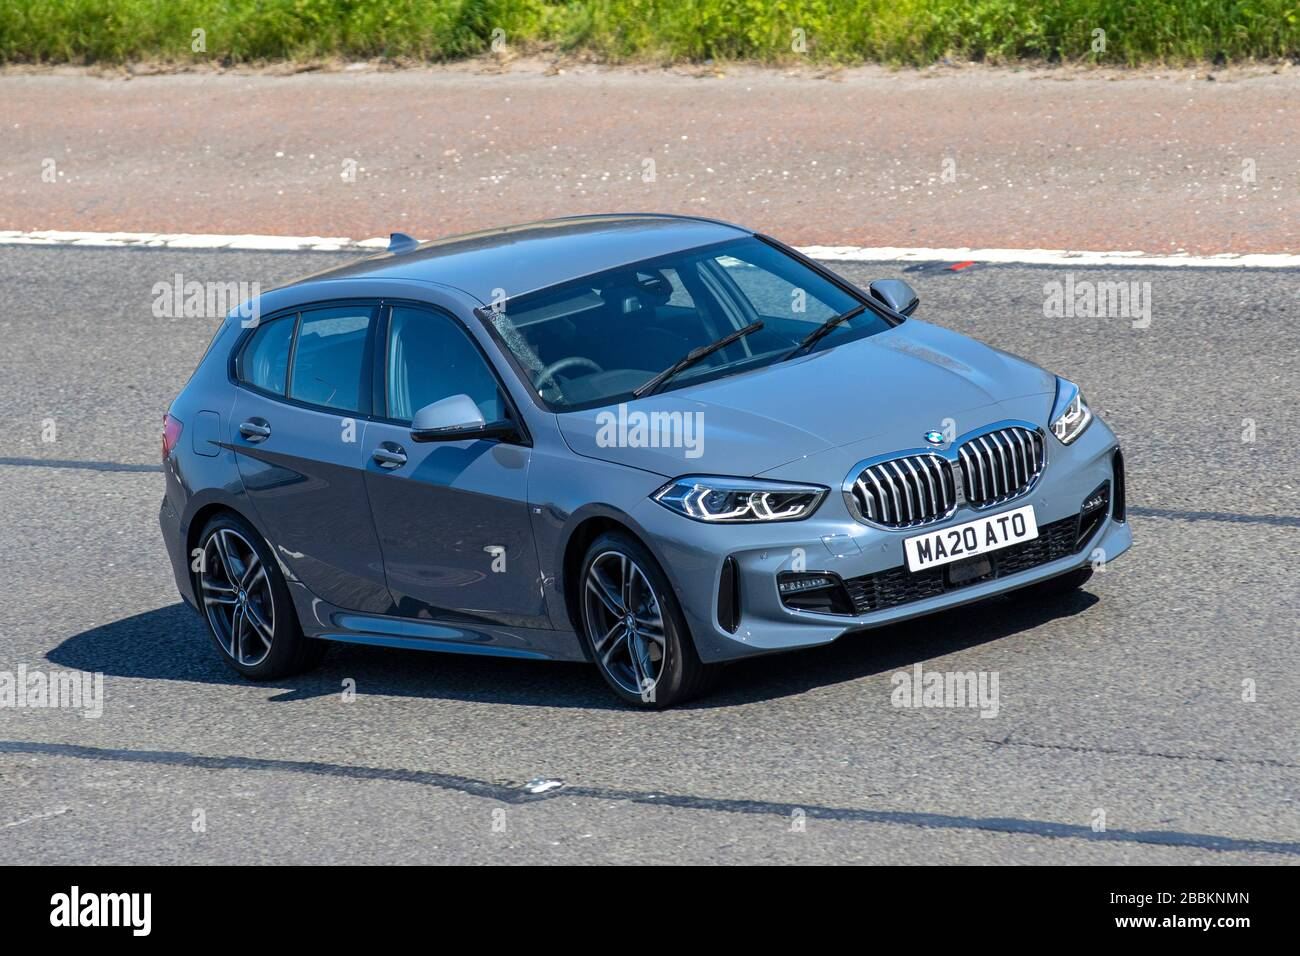 2020 Grey Bmw 1 Series F40 Vehicular Traffic Moving Vehicles Vehicle Driving Roads Motors Motoring On The M6 Motorway Highway Stock Photo Alamy